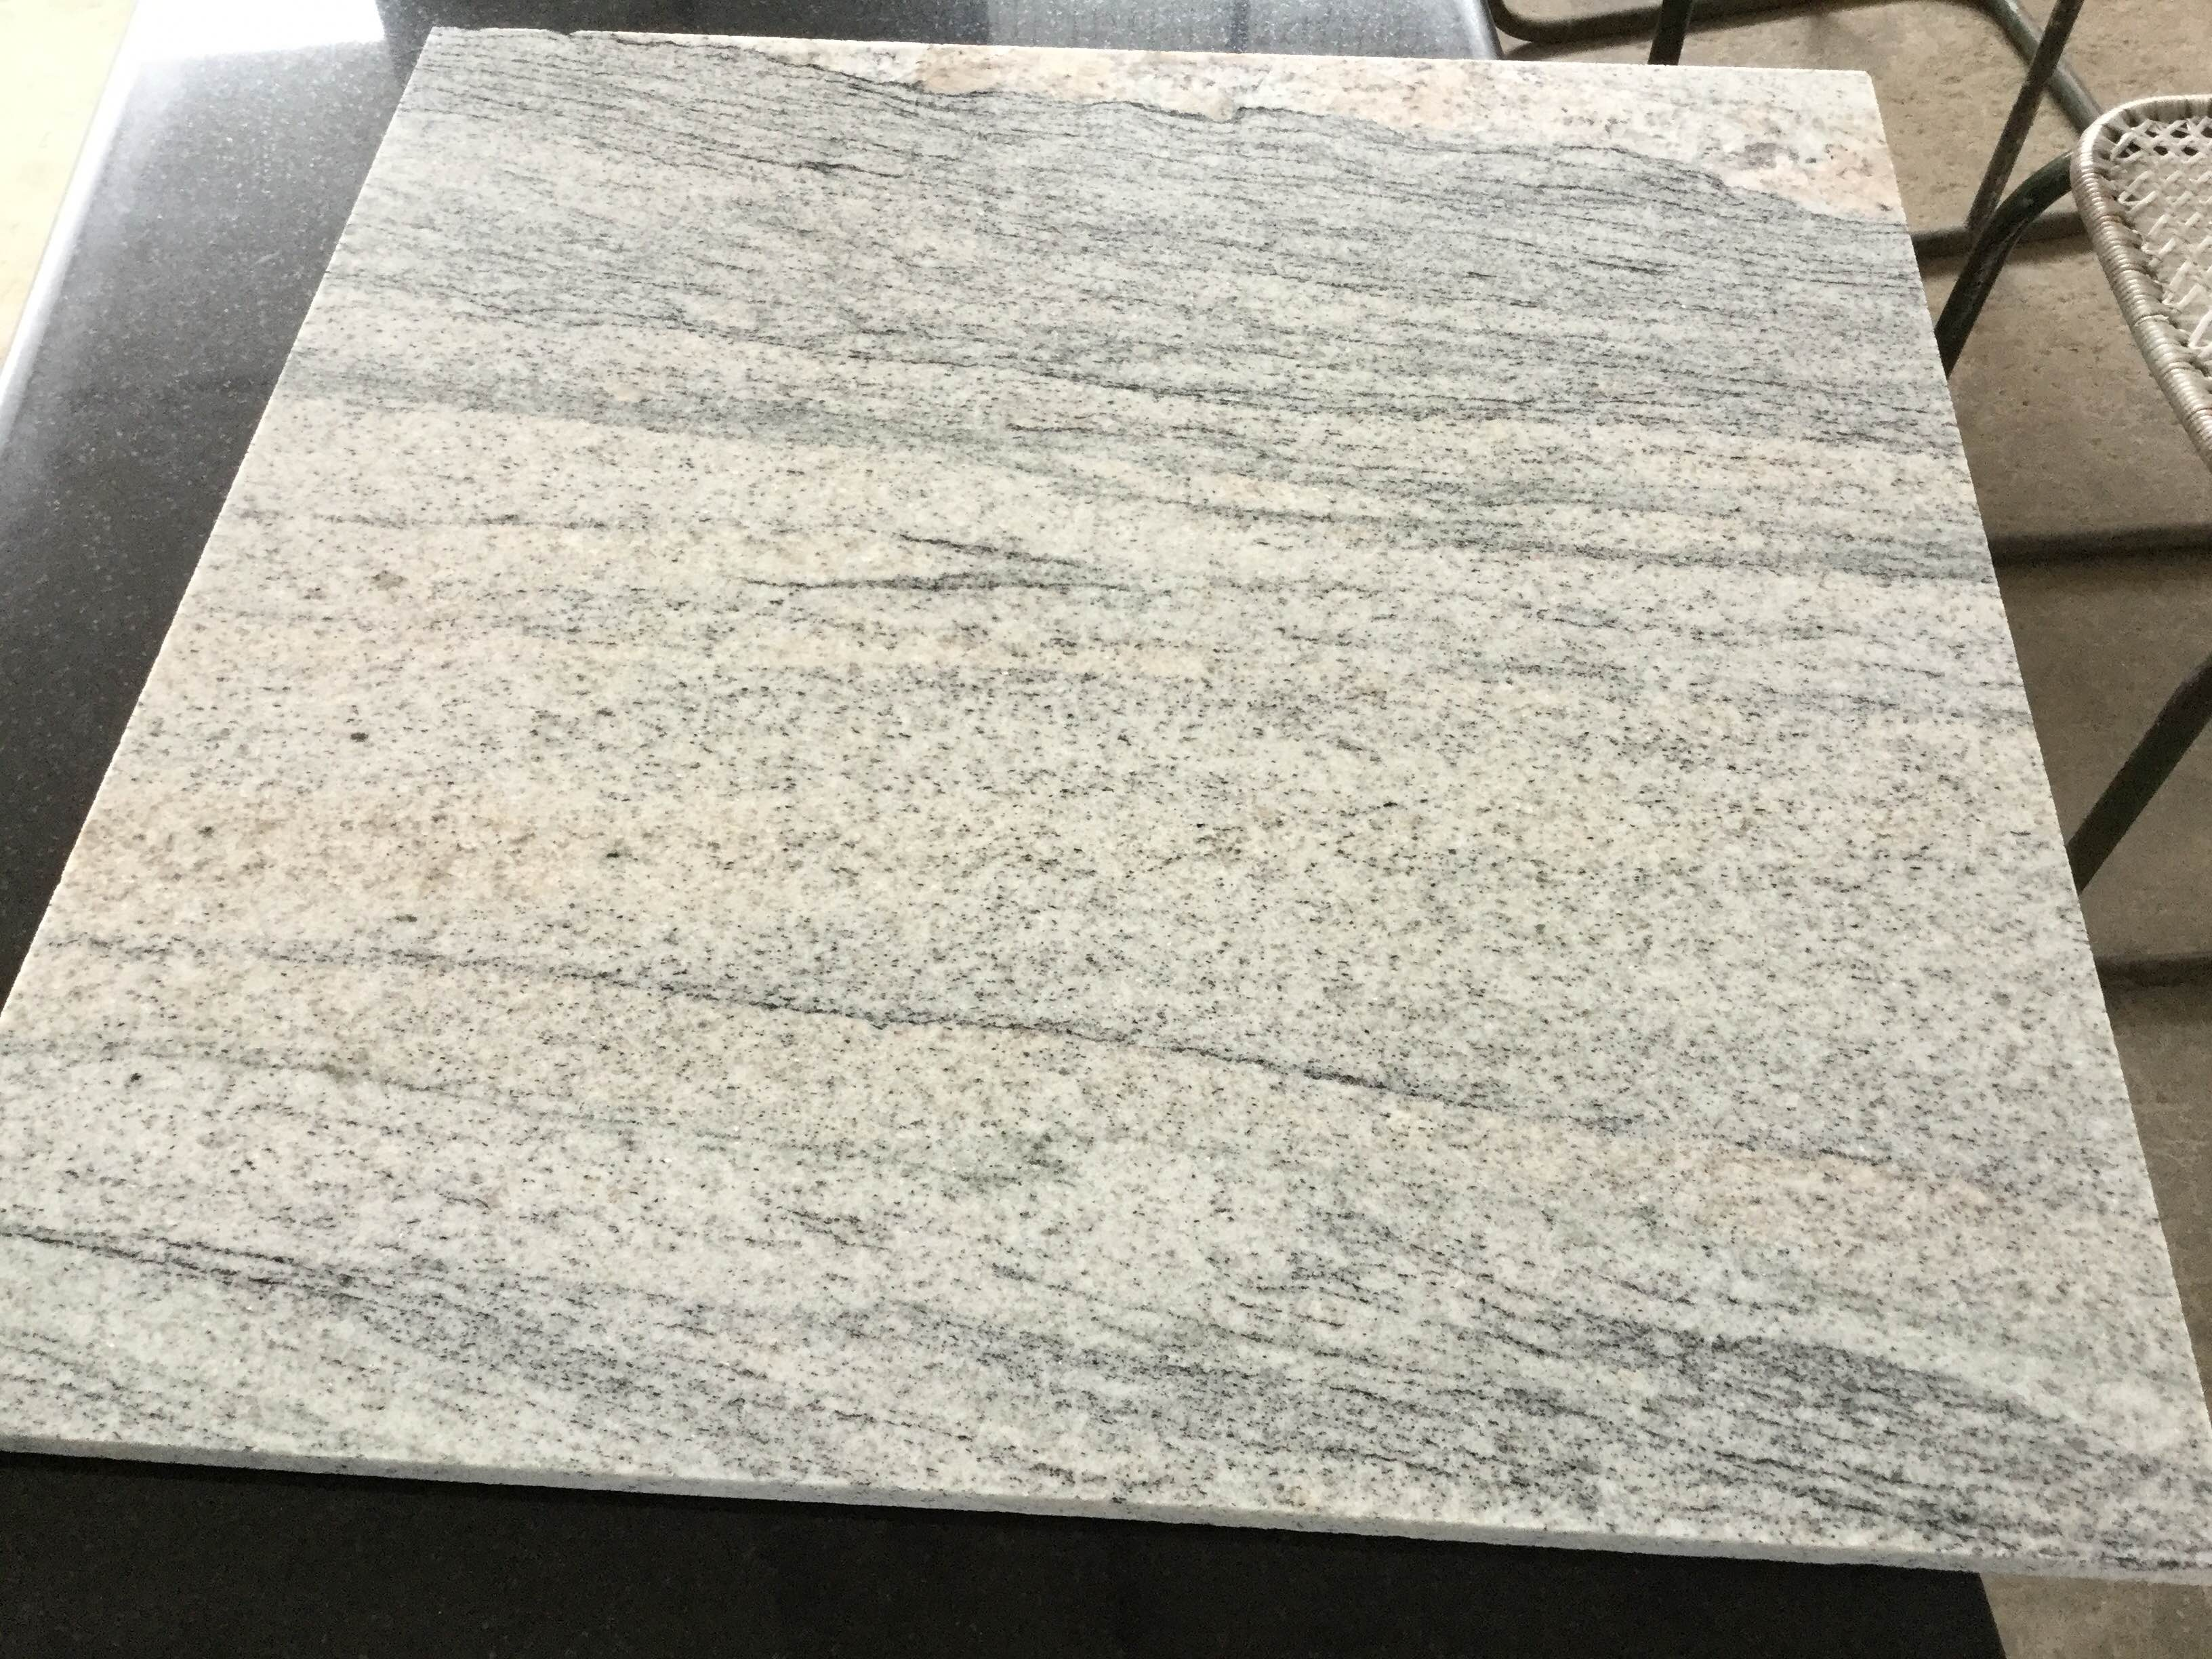 Packing Of Imperial White Granite Slabs The Materials